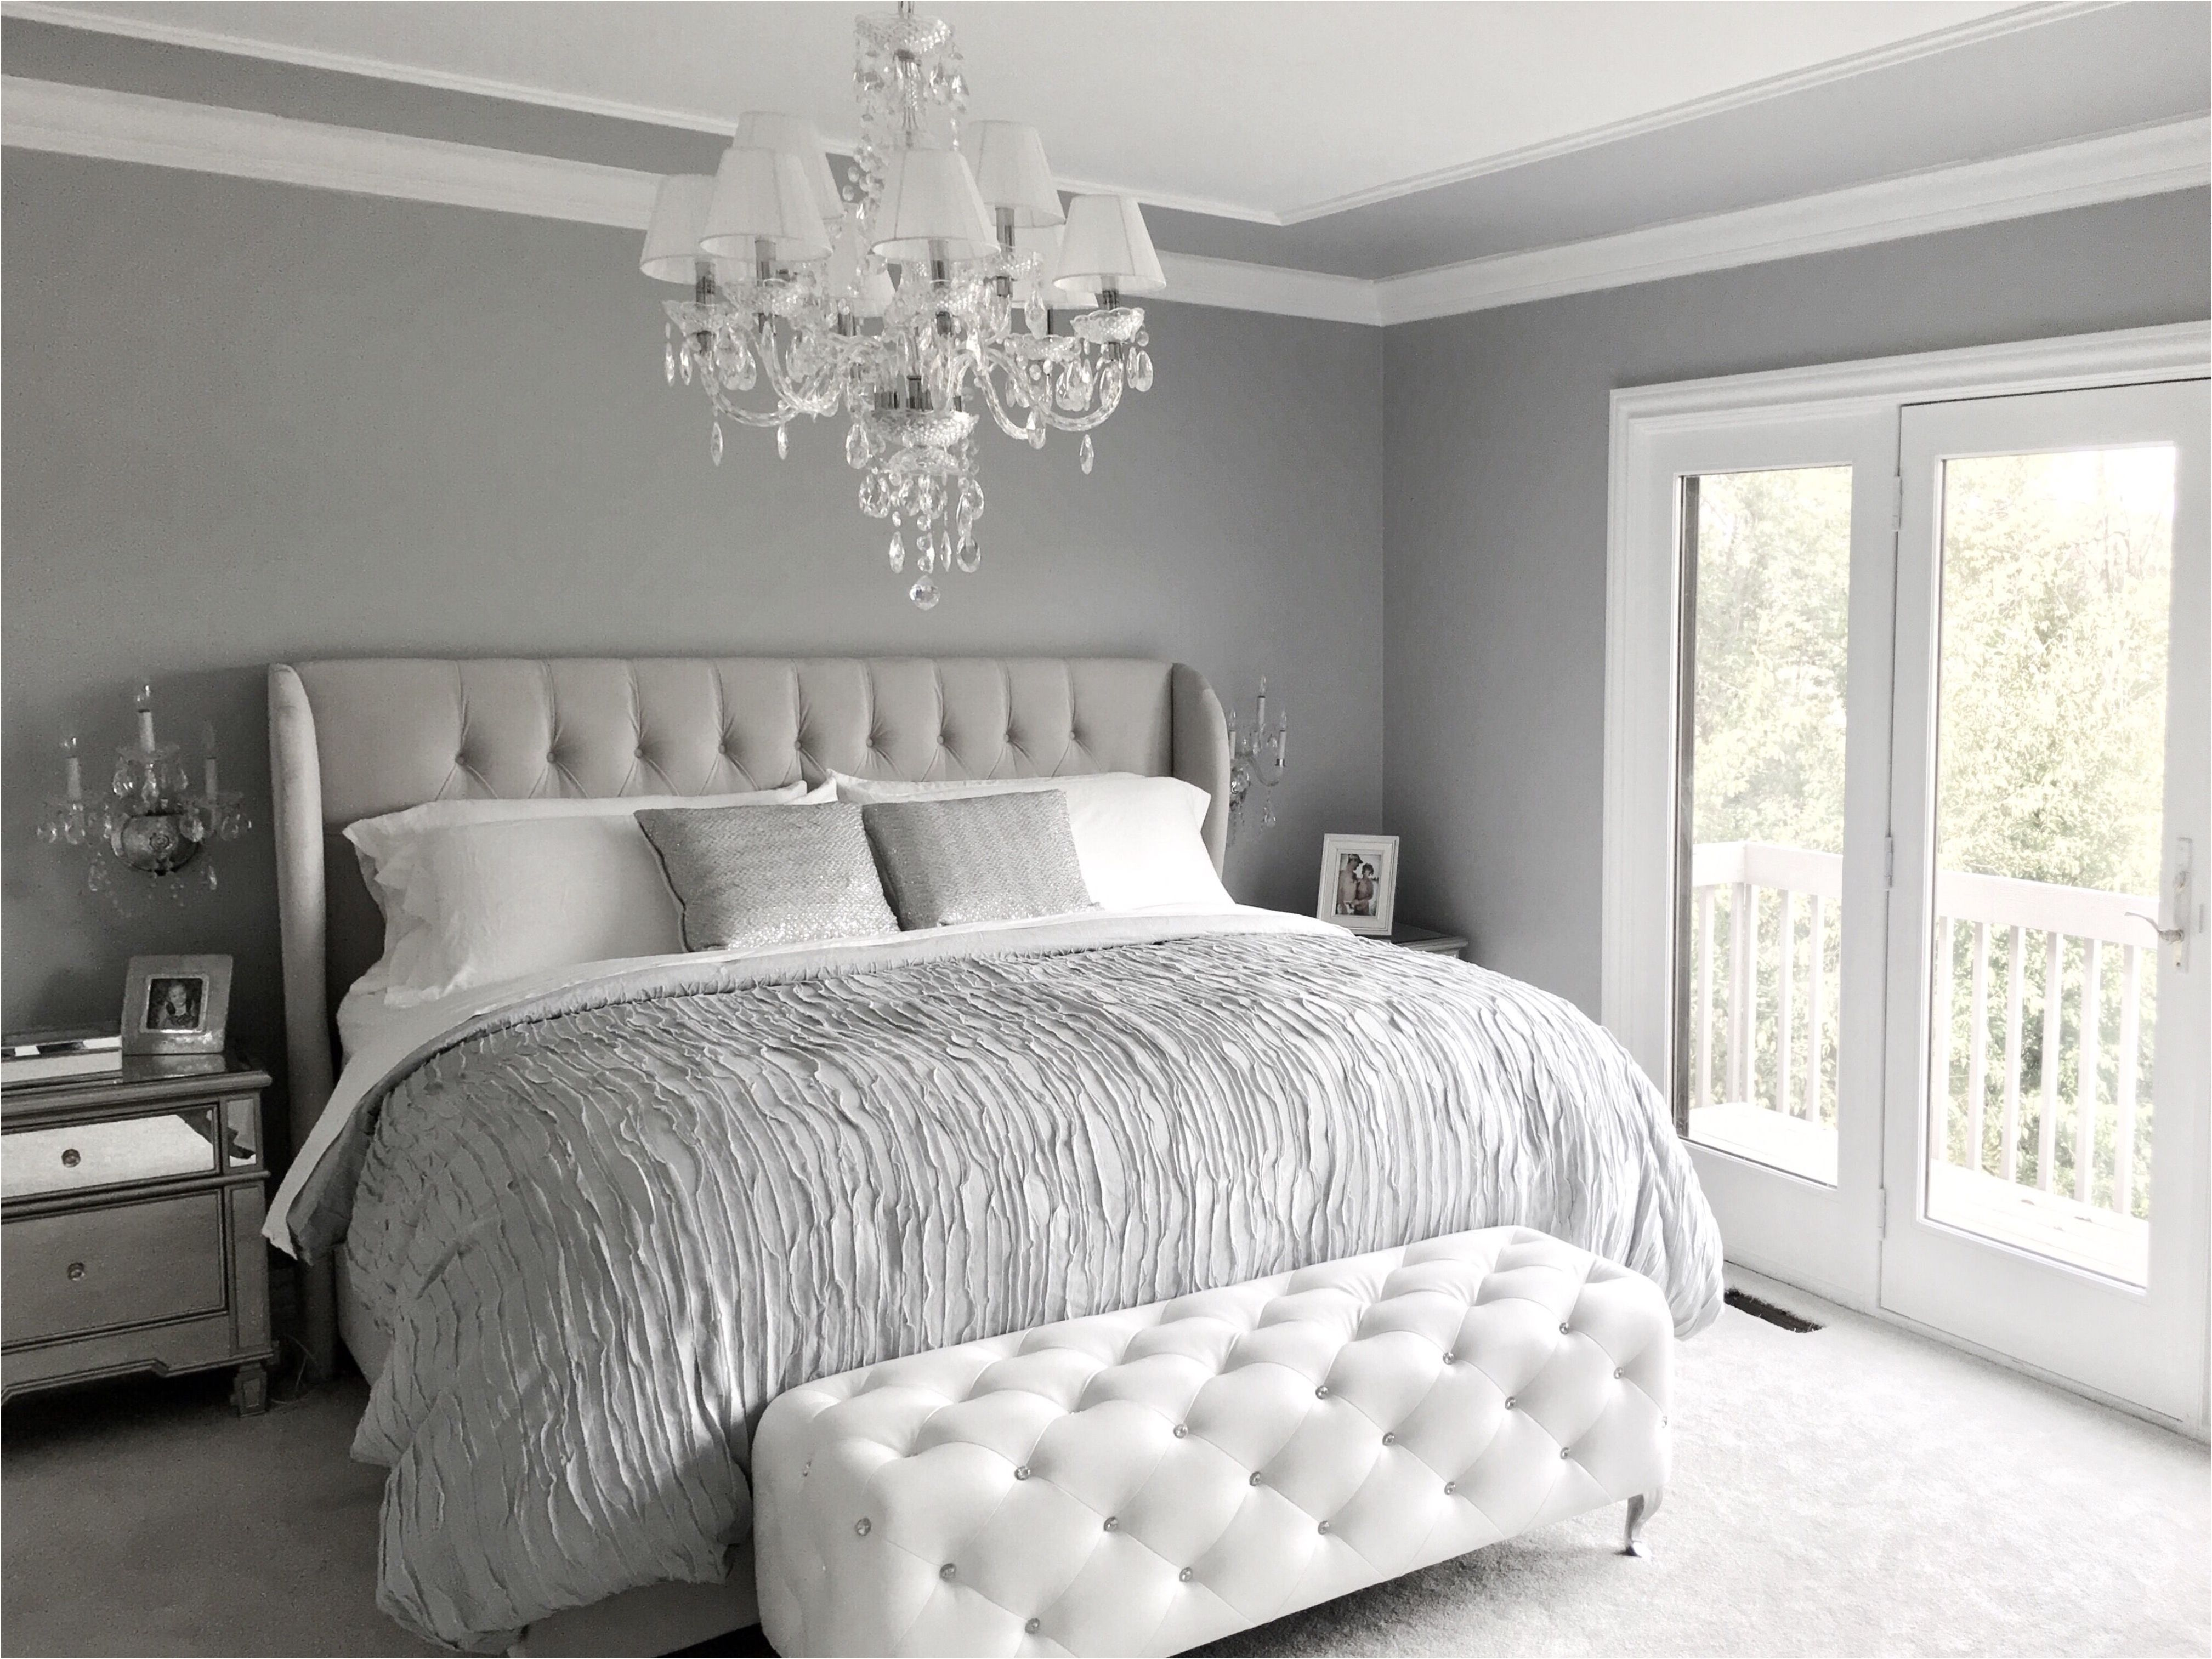 Bedroom Furniture Ideas. Remodel and build your ideal boudoir